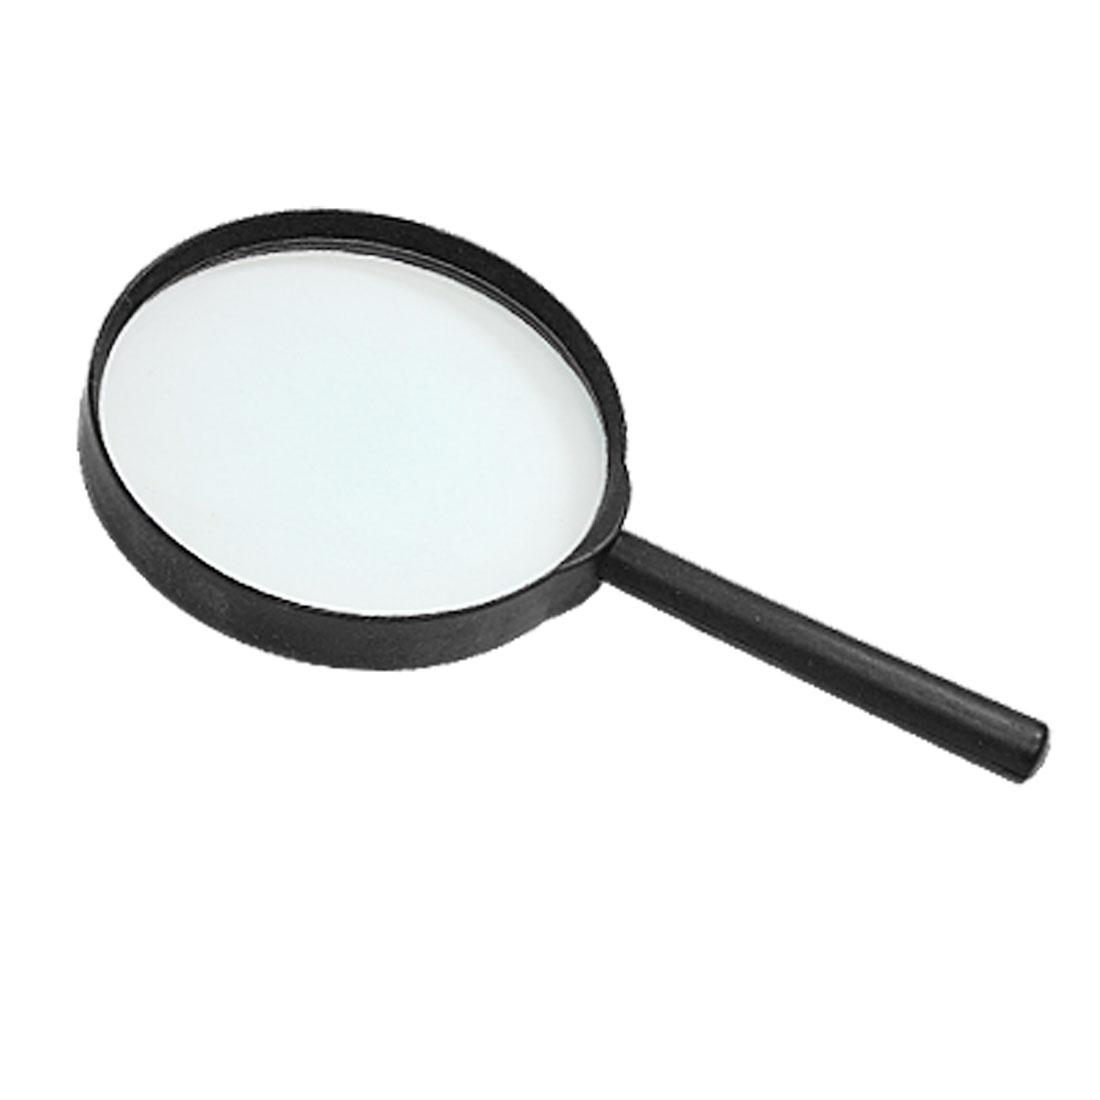 3X Magnifying Glass Lens Reading Magnifier with Handle